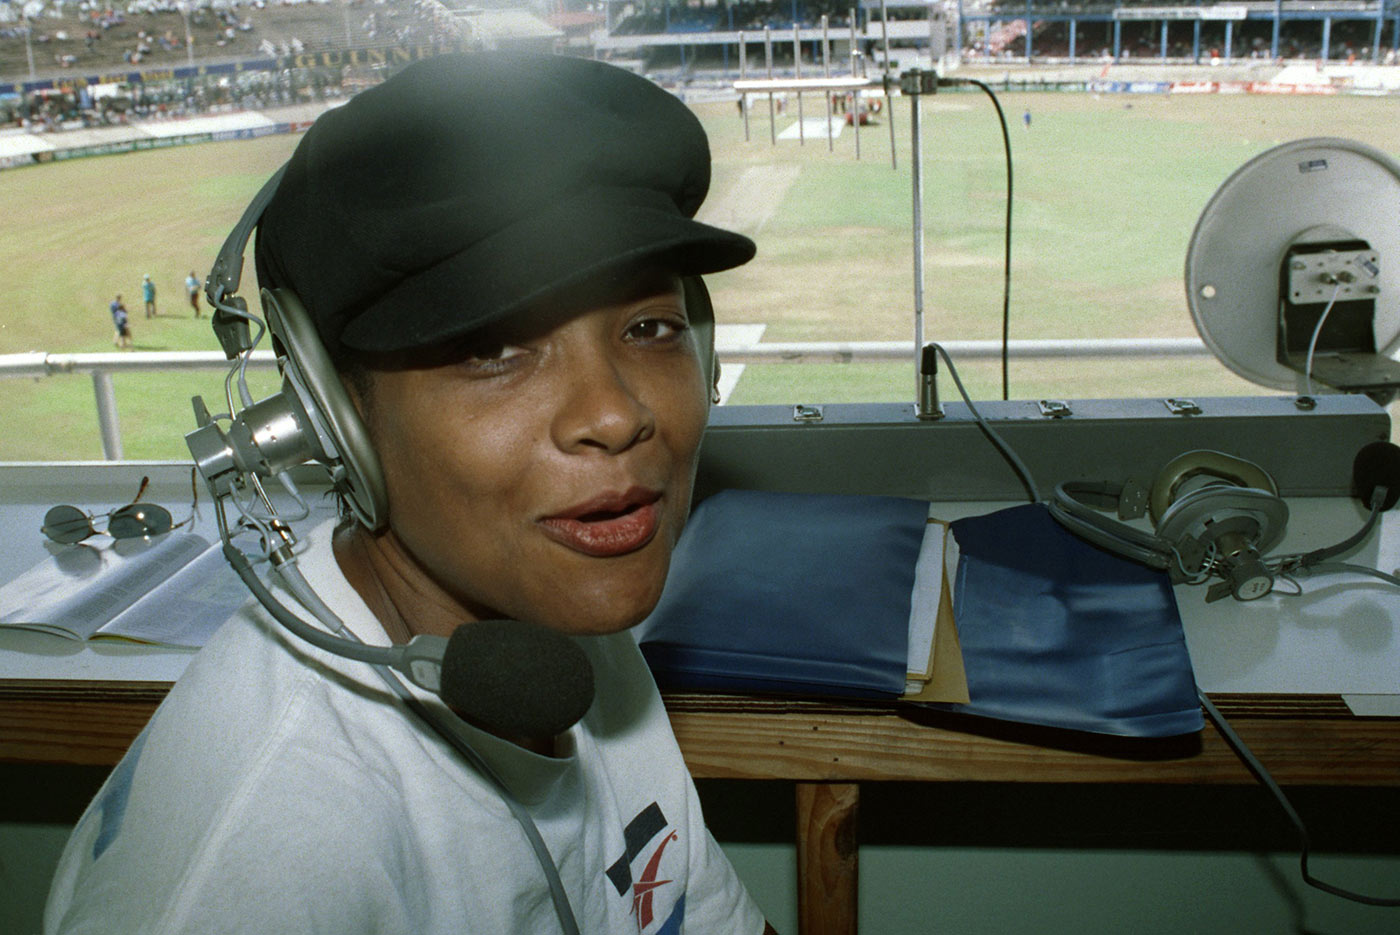 Donna Symmonds in the box at the Queen's Park Oval in 1998